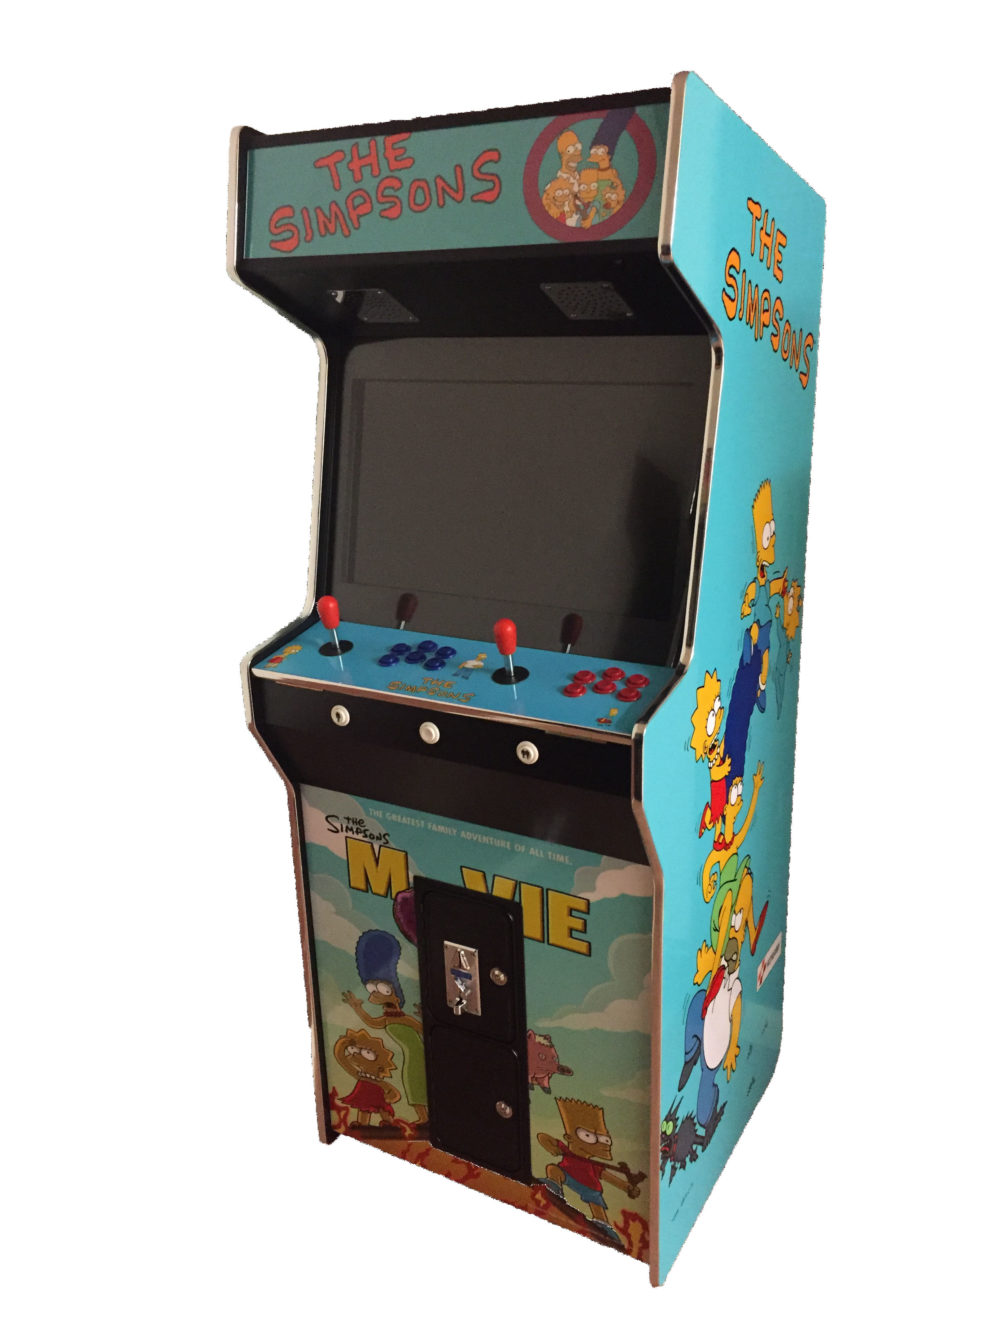 Arcade Rewind 2019 in 1 Upright Arcade Machine Simpsons sydney